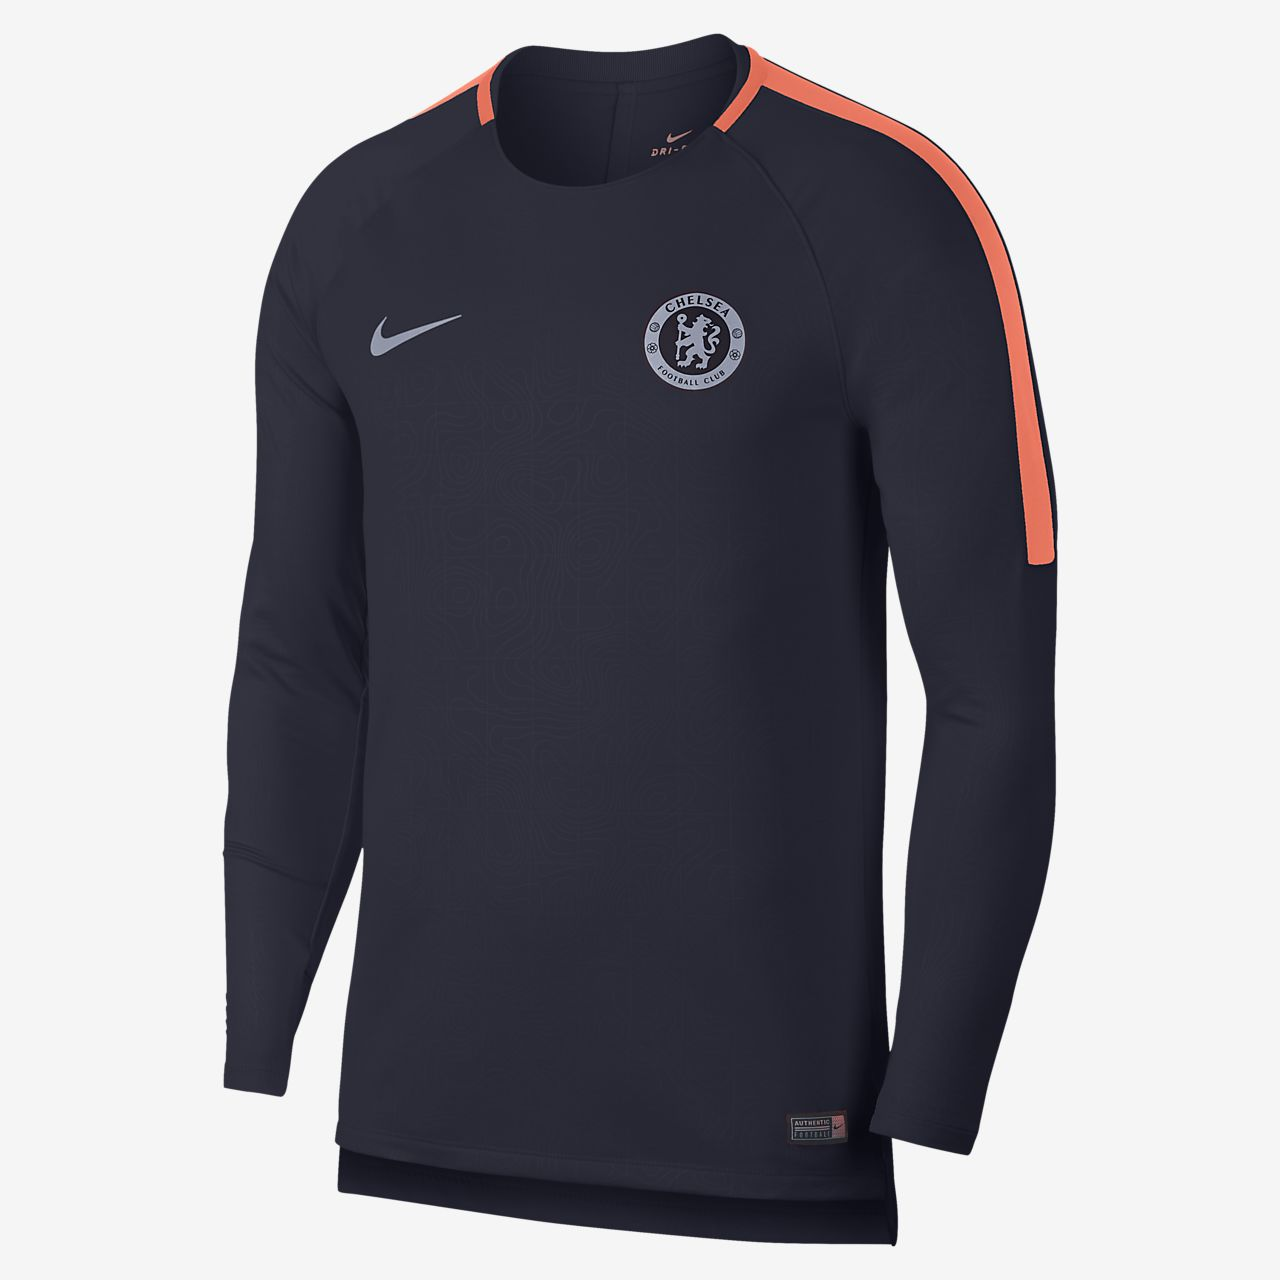 newest 1ca28 8515c Chelsea FC Dri-FIT Squad Men's Long-Sleeve Football Top